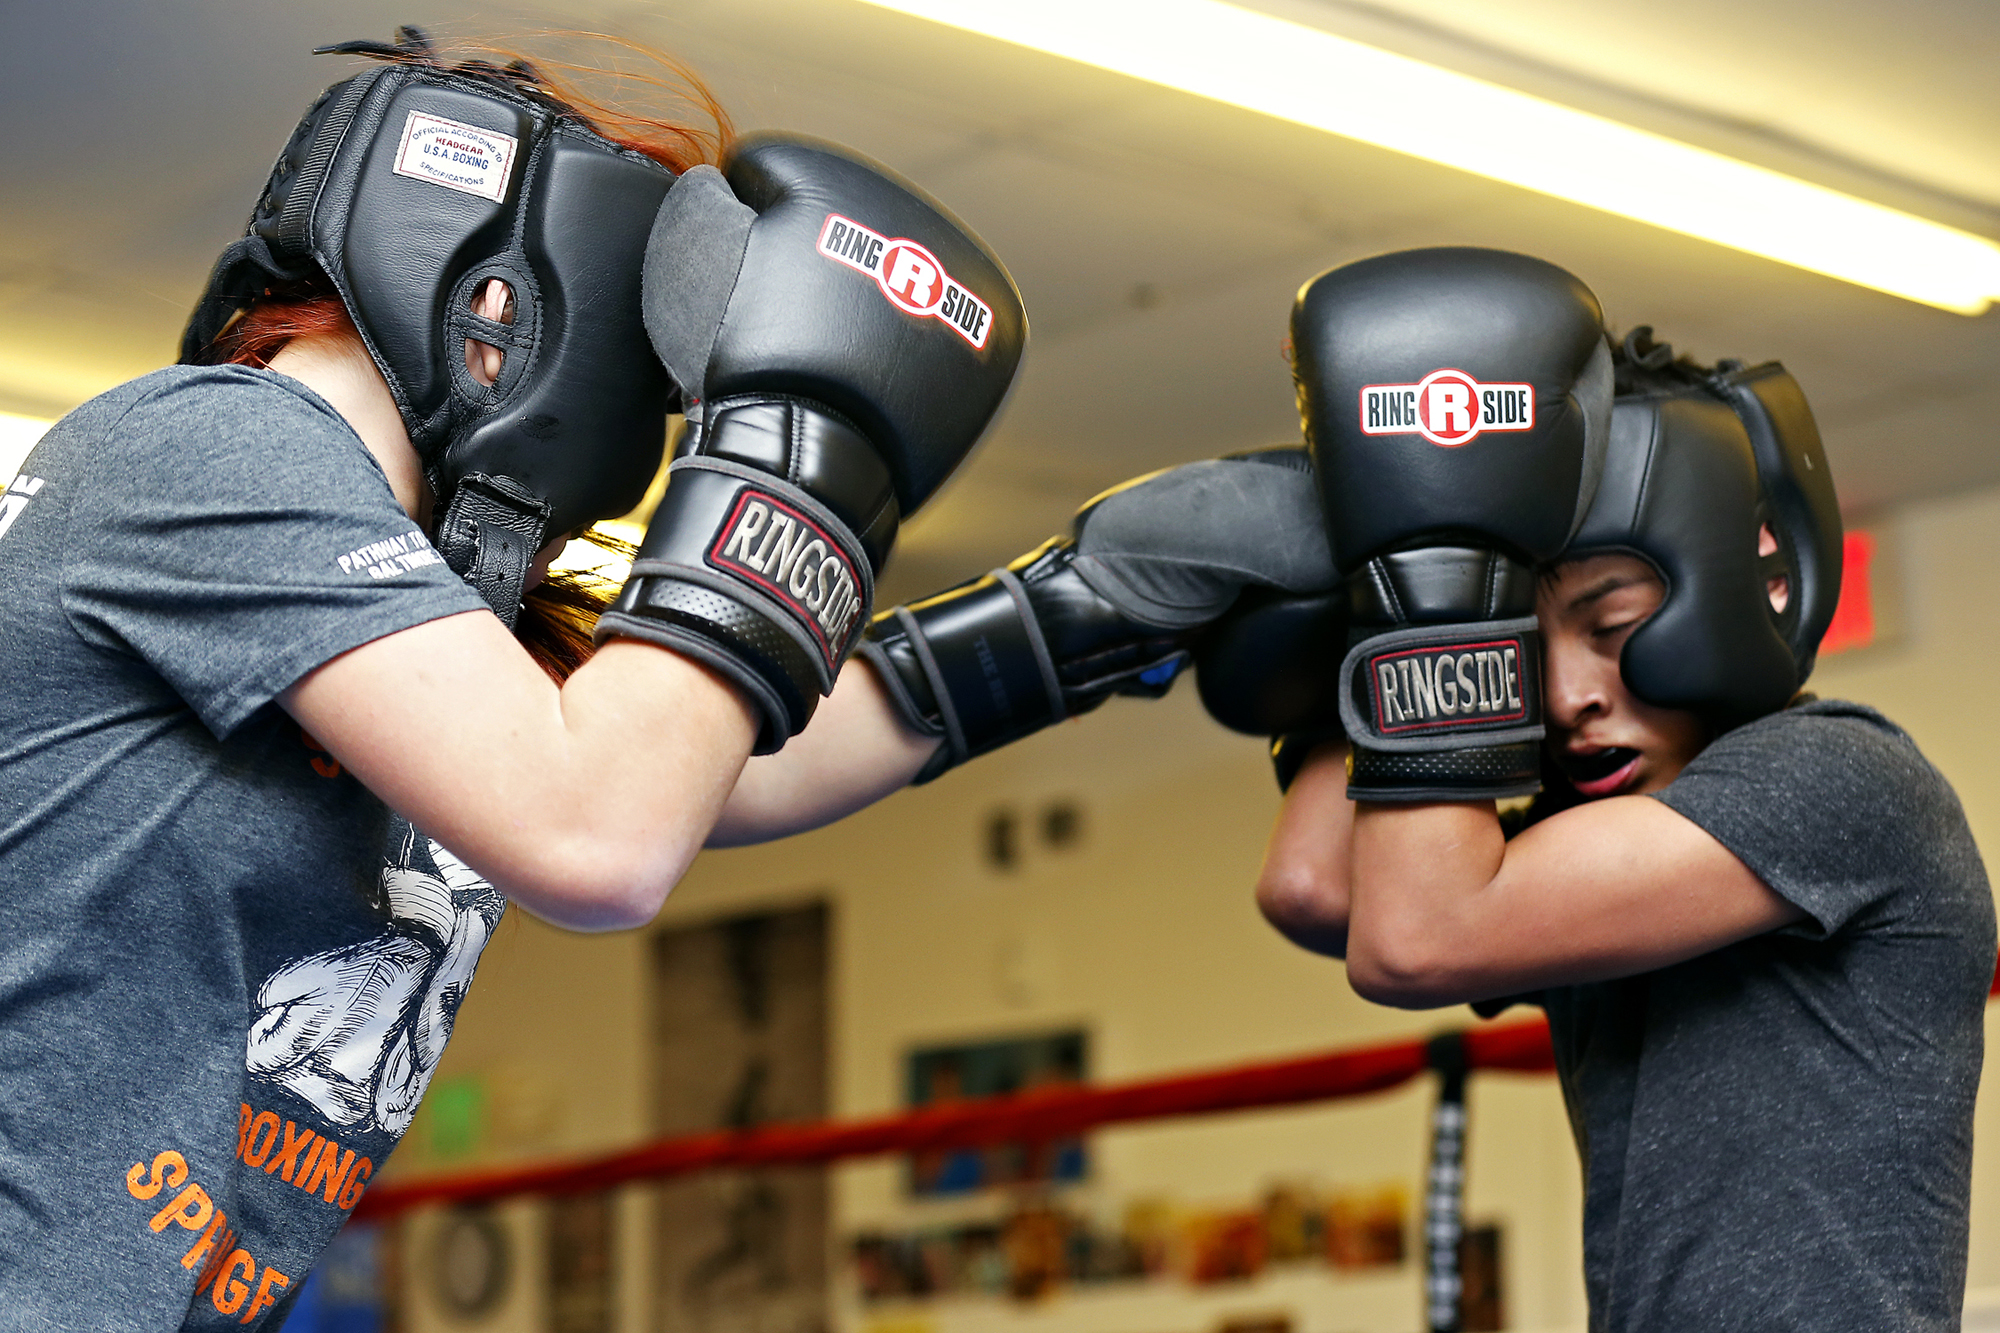 """Shilyn Bradt spars with Luis Velasquez at Smitty's Midwest Boxing Gym in Springfield, Mo. on Feb. 4, 2016. The only lingering effects from her past health struggles are having an inability to vomit or burp due to her stomach being tied around her esophagus, and a sharp pain if she ever takes a hit to what is now a long scar in her stomach. """"Oh, gosh, it hurts a lot,""""said Bradt. """"I don't know how it's going to react if I get hit there too many times."""""""